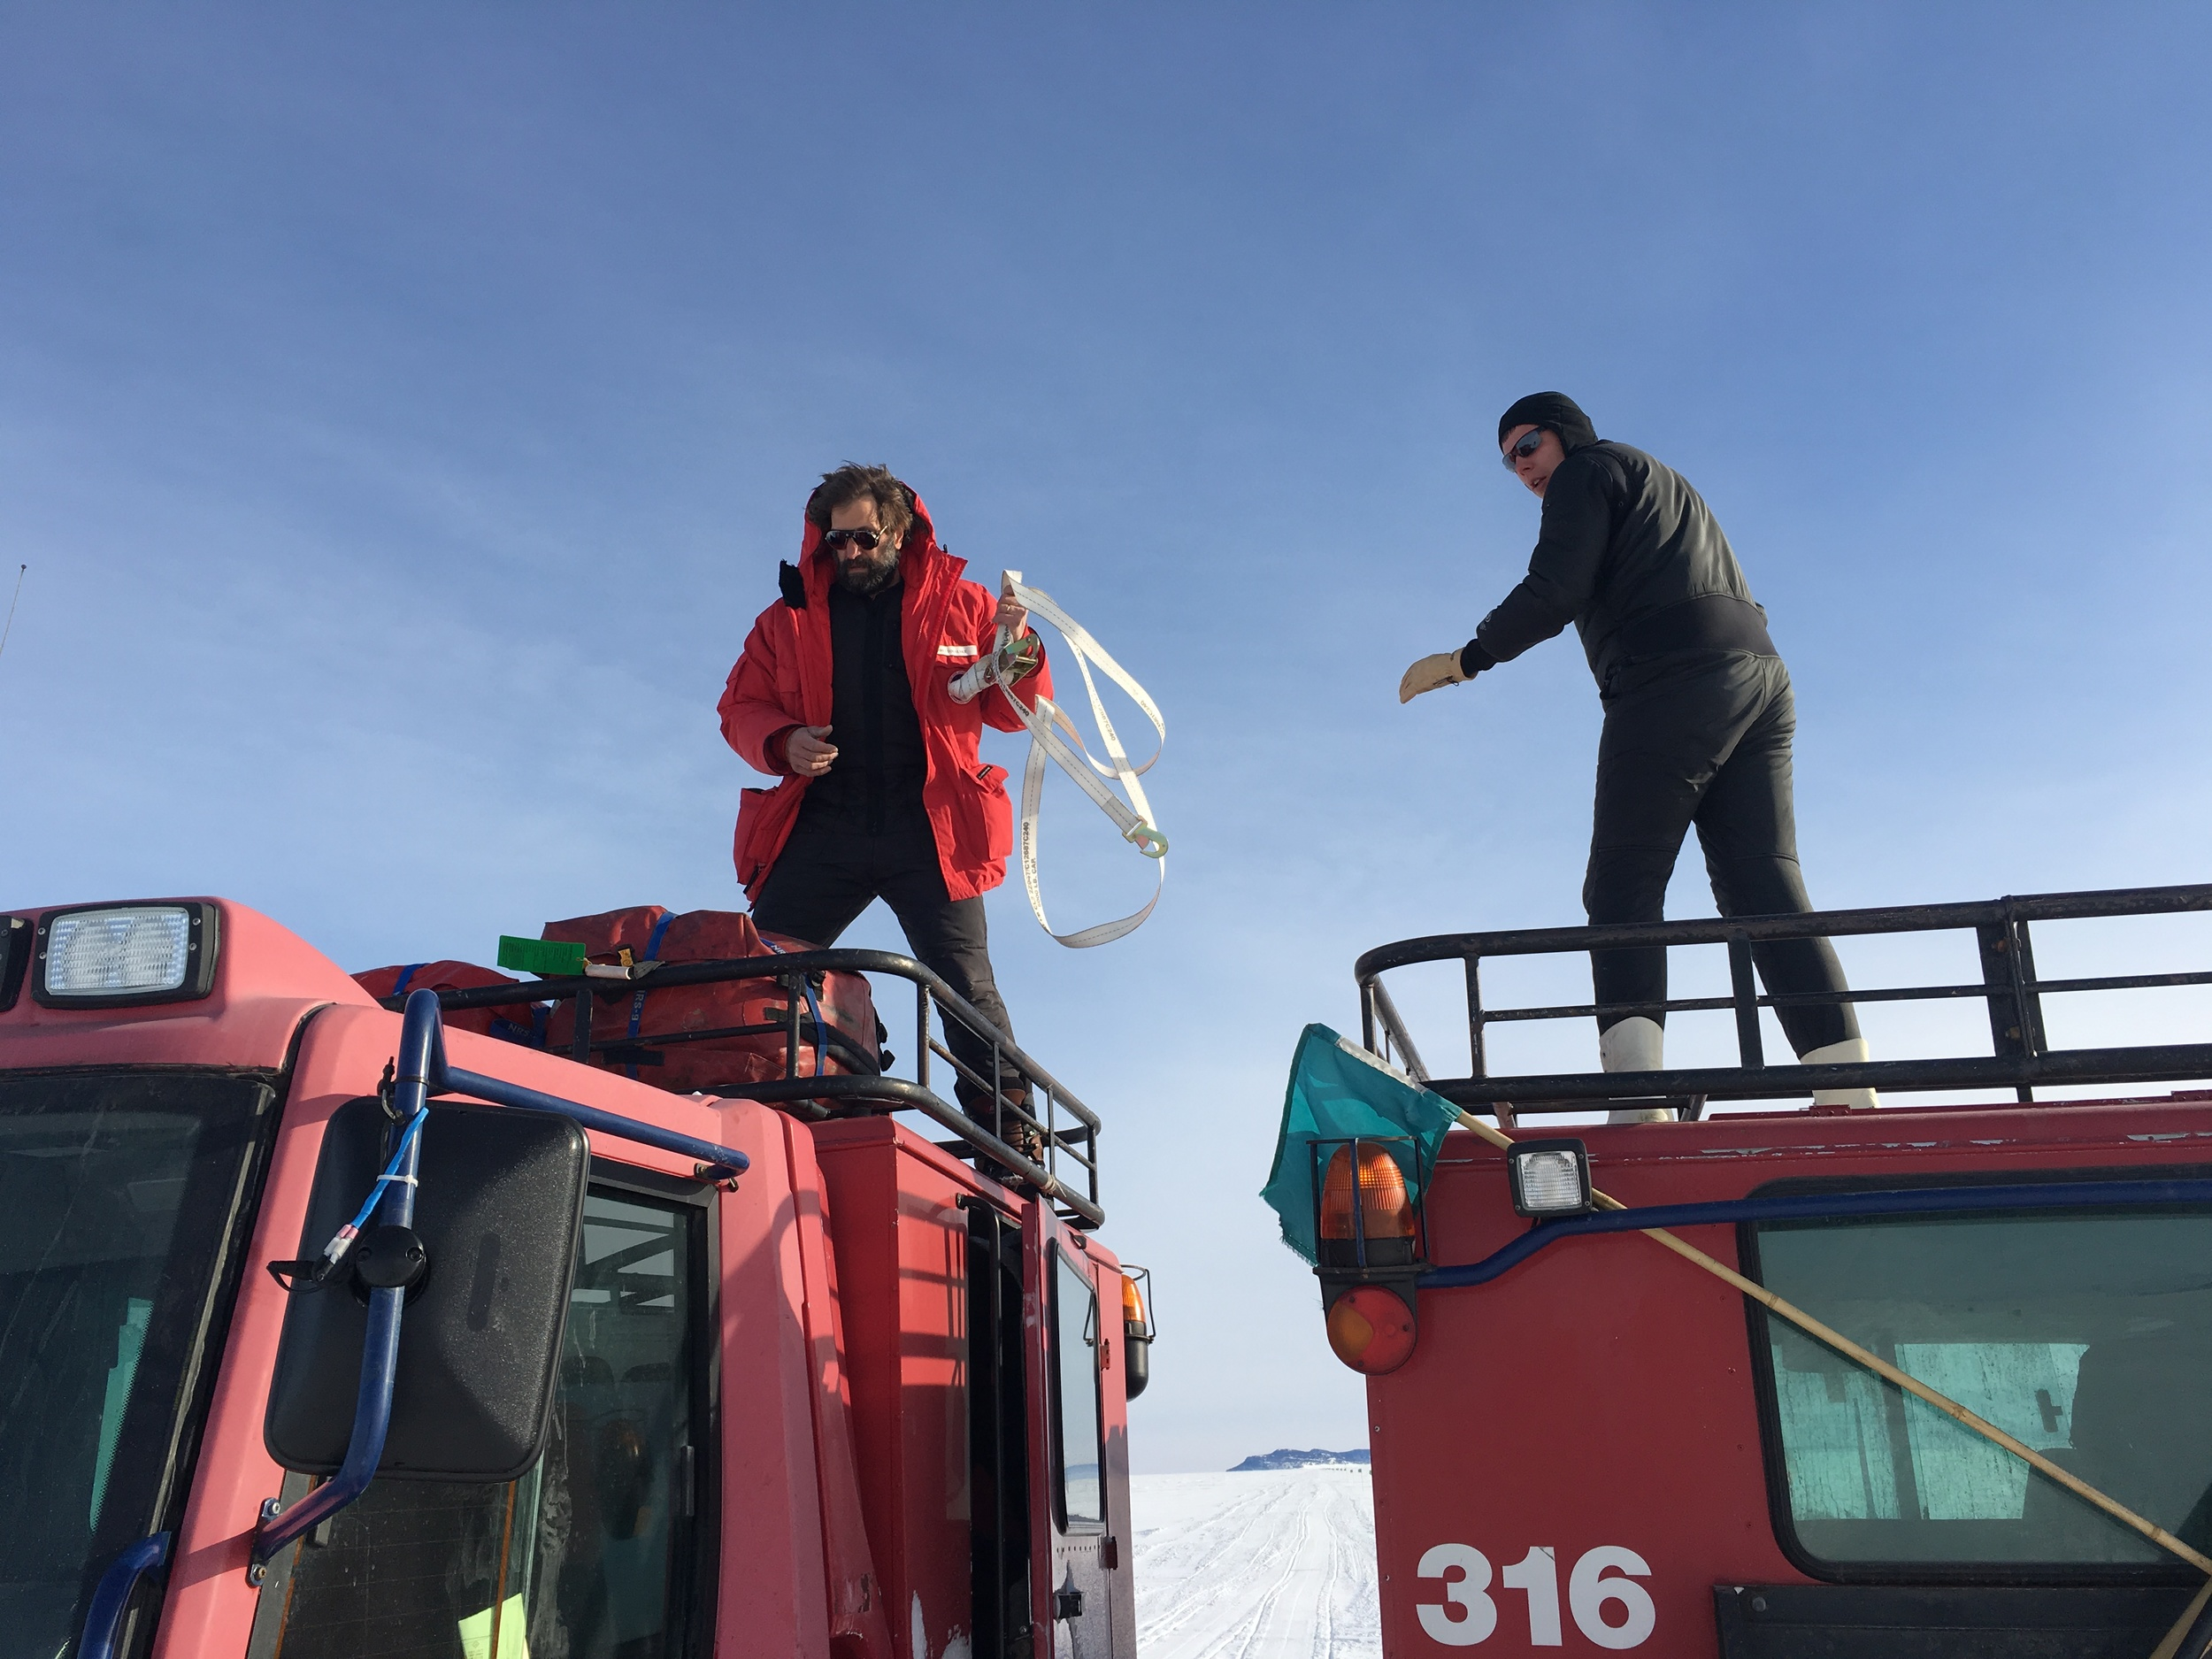 Steve and Bret transfer survival bags from one pisten bully to another out on the ice.